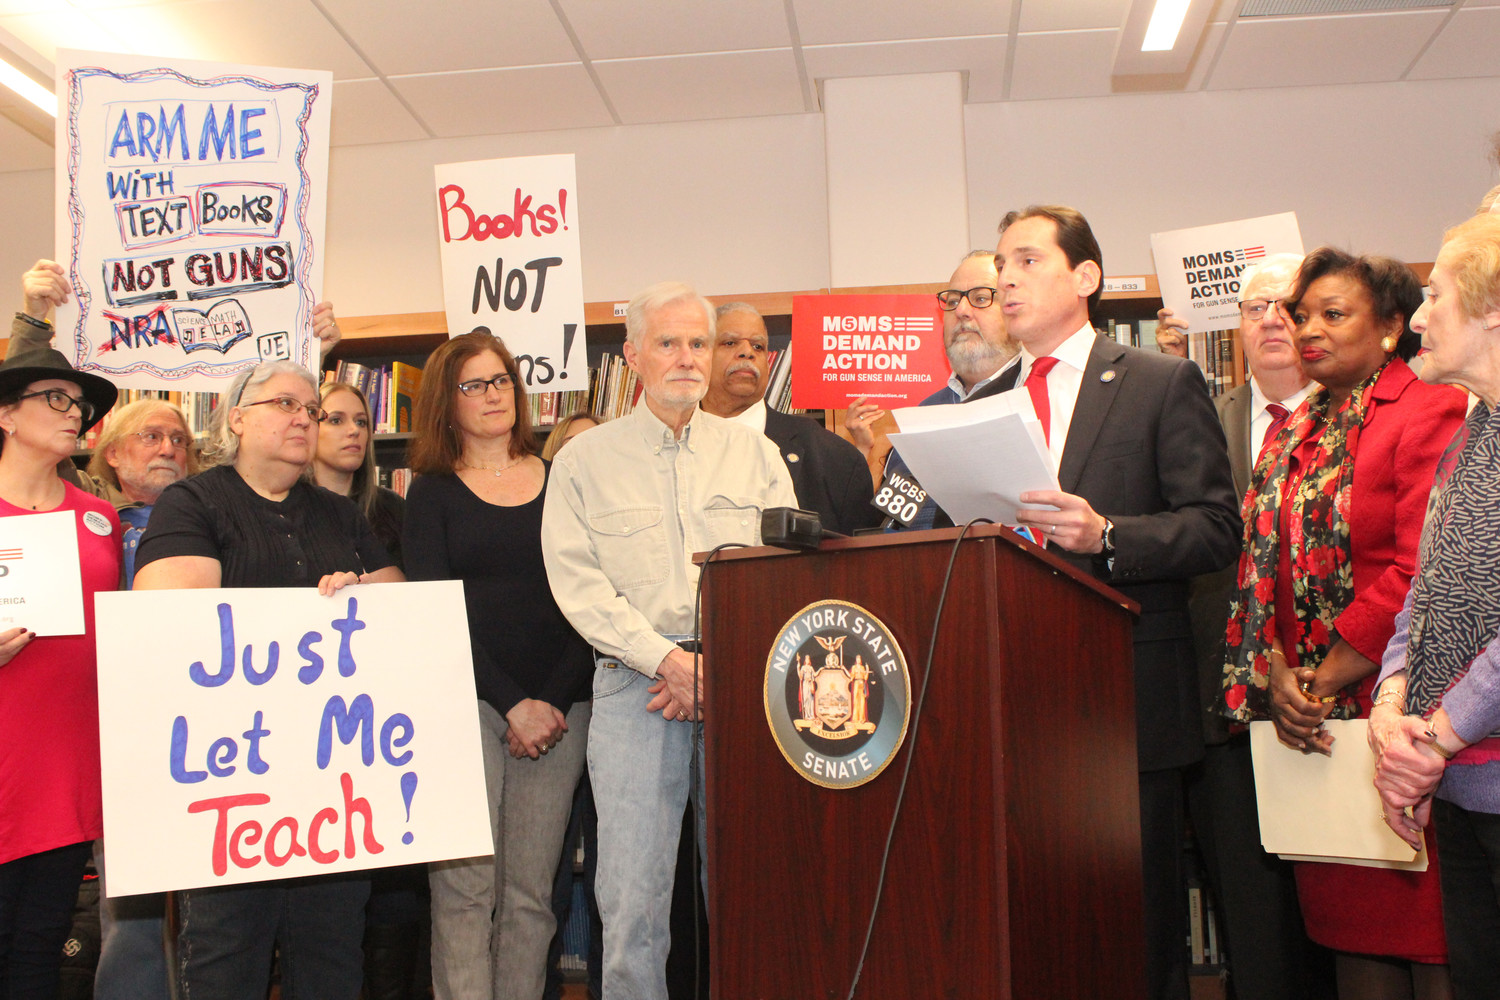 State Sen. Todd Kaminsky joined other Democratic senators, students, teachers and community members on March 3 at South Side High School in Rockville Centre to announce a proposed bill that would prohibit teachers from carrying guns in school.